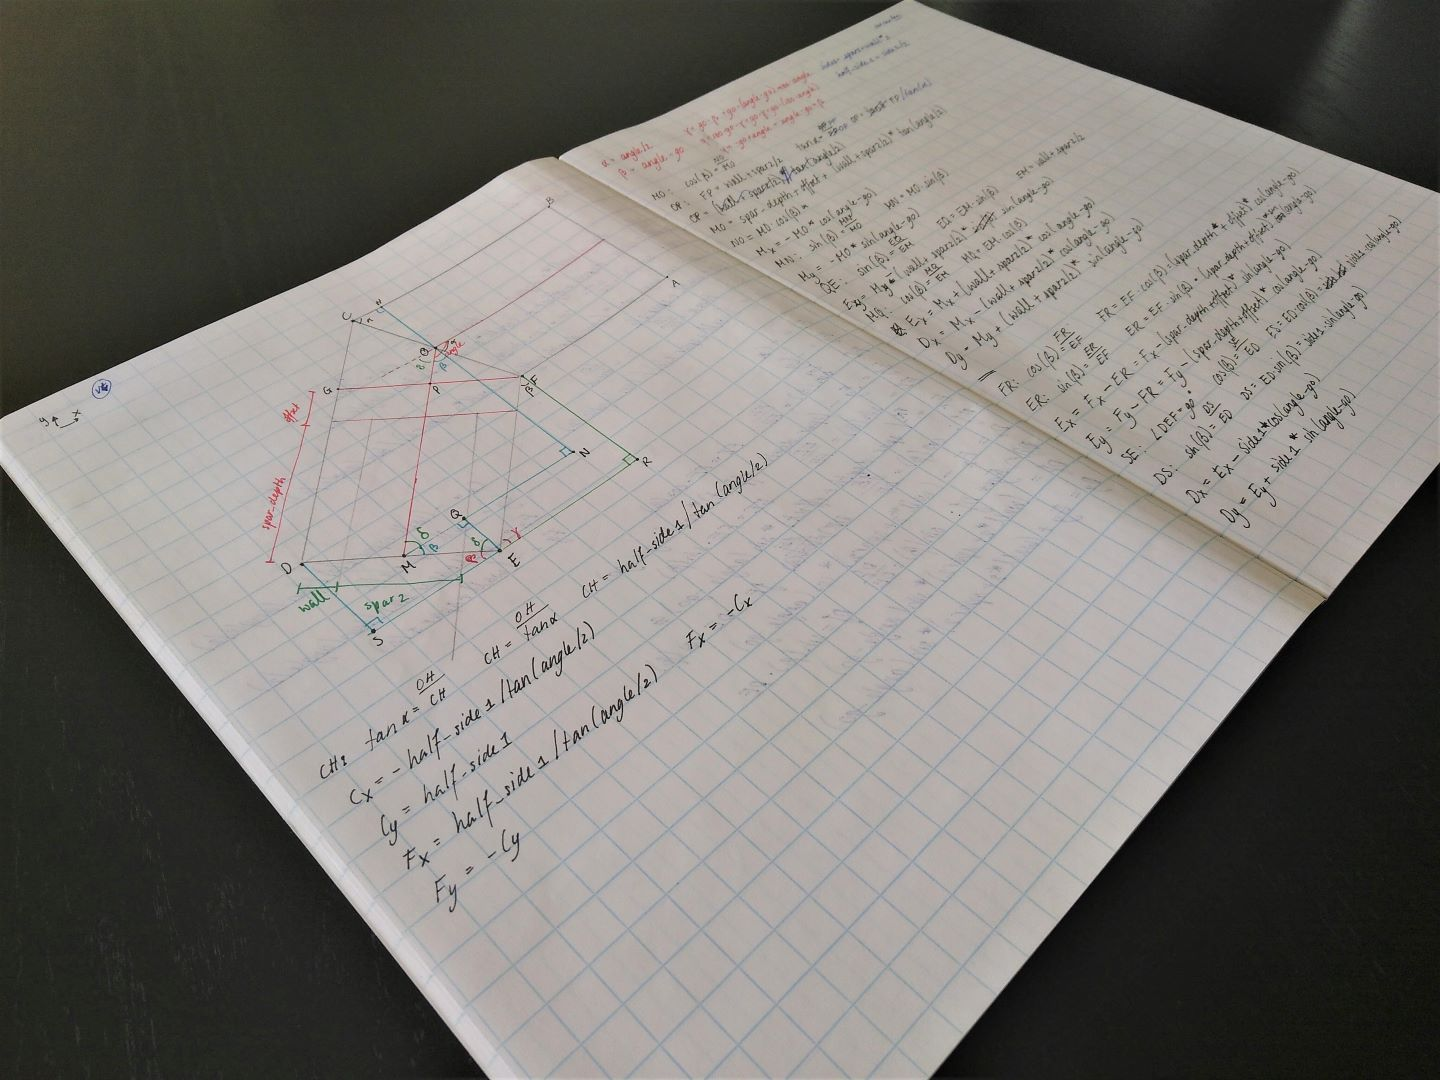 kite part calculations